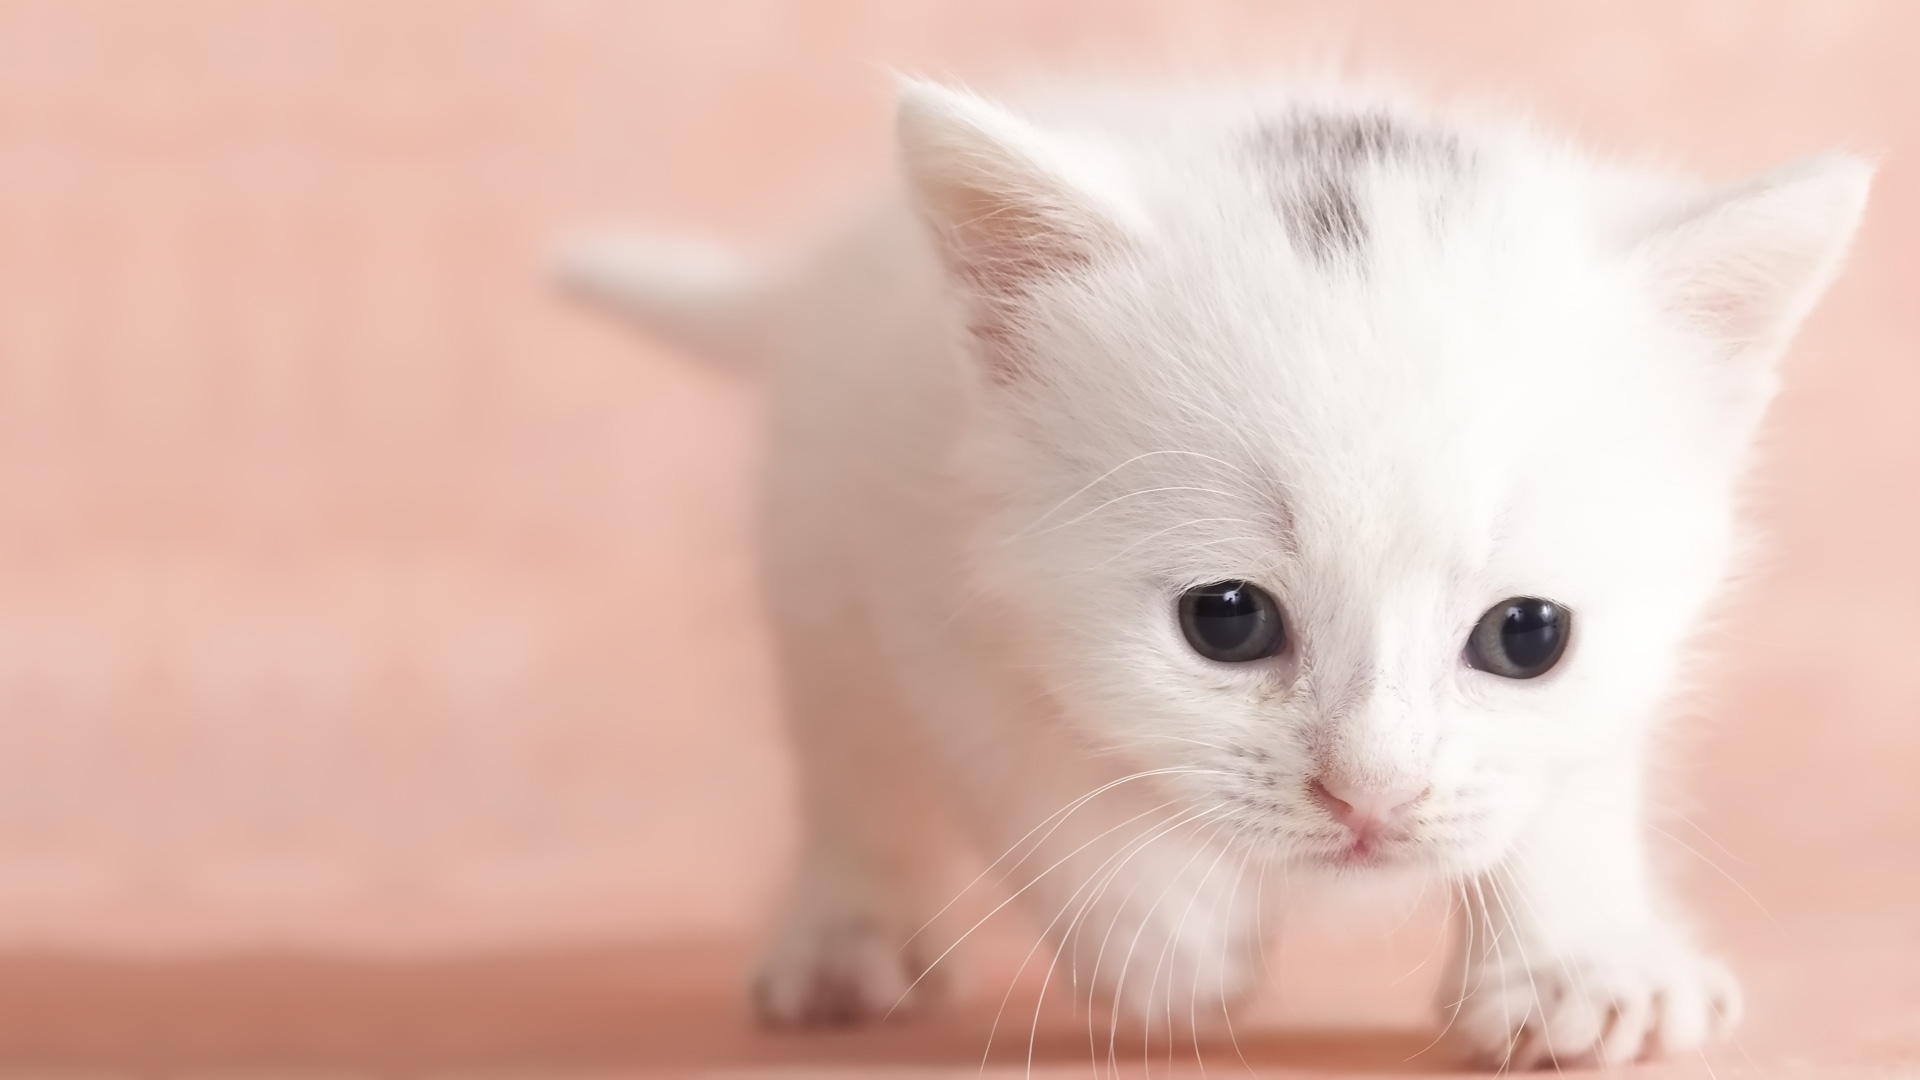 Description Cute Baby Cat HD Wallpapers Download Cute Baby Cat 1920x1080